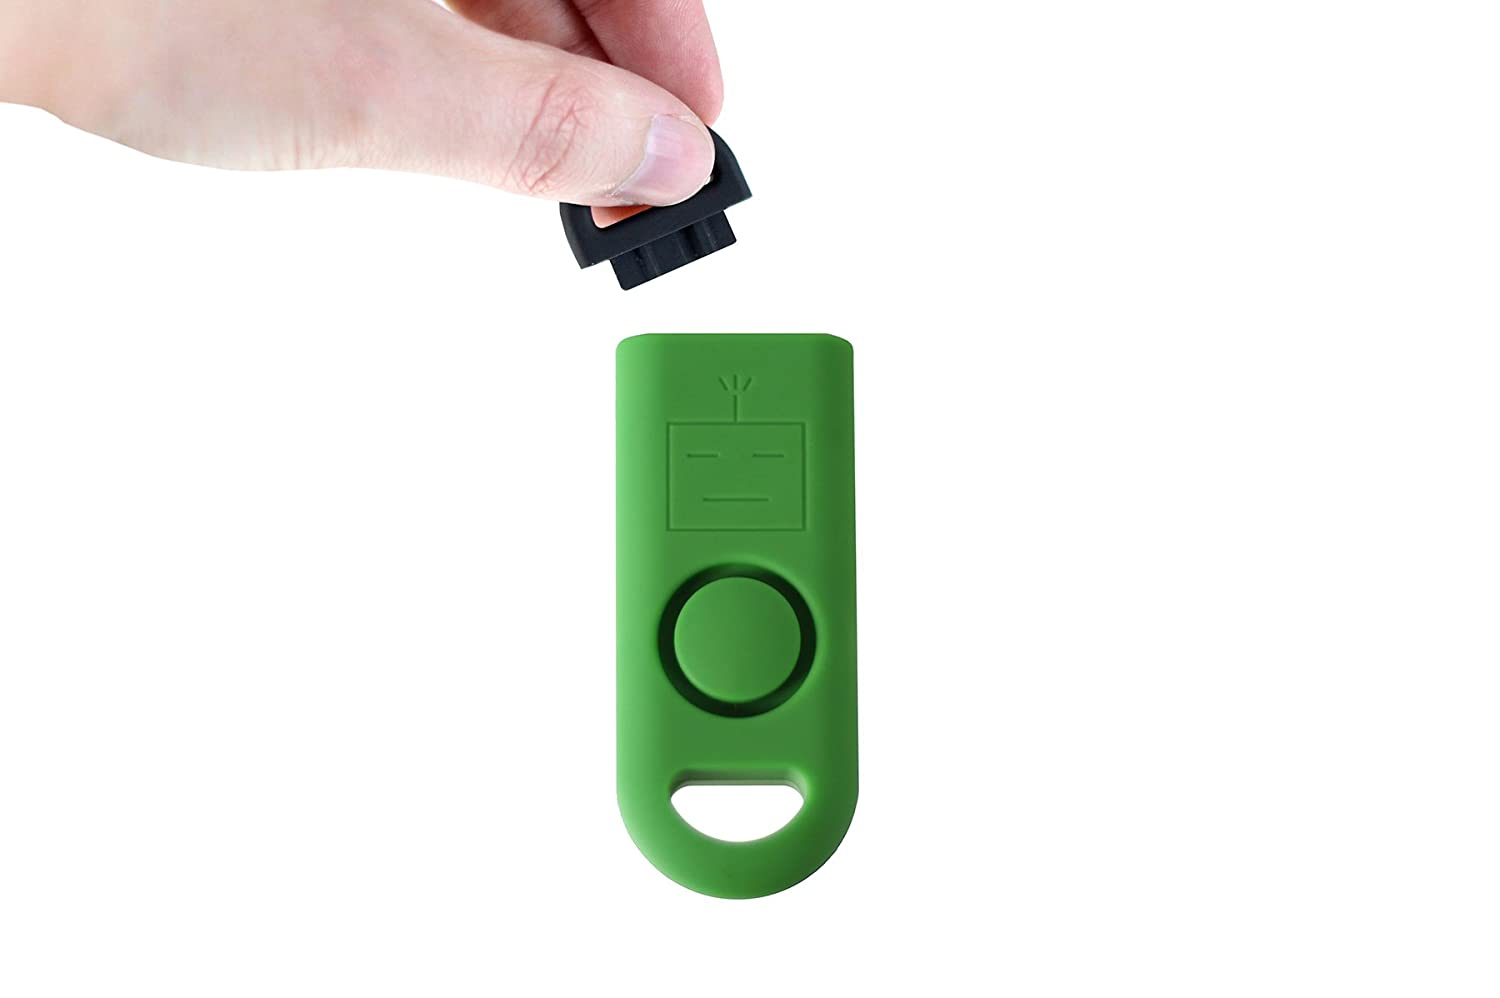 The Worlds Smallest Emergency Alarm Use in Any Emergency Ranger Green B A S U eAlarm+ with Tripwire Hook Battery Included Carabiner Included